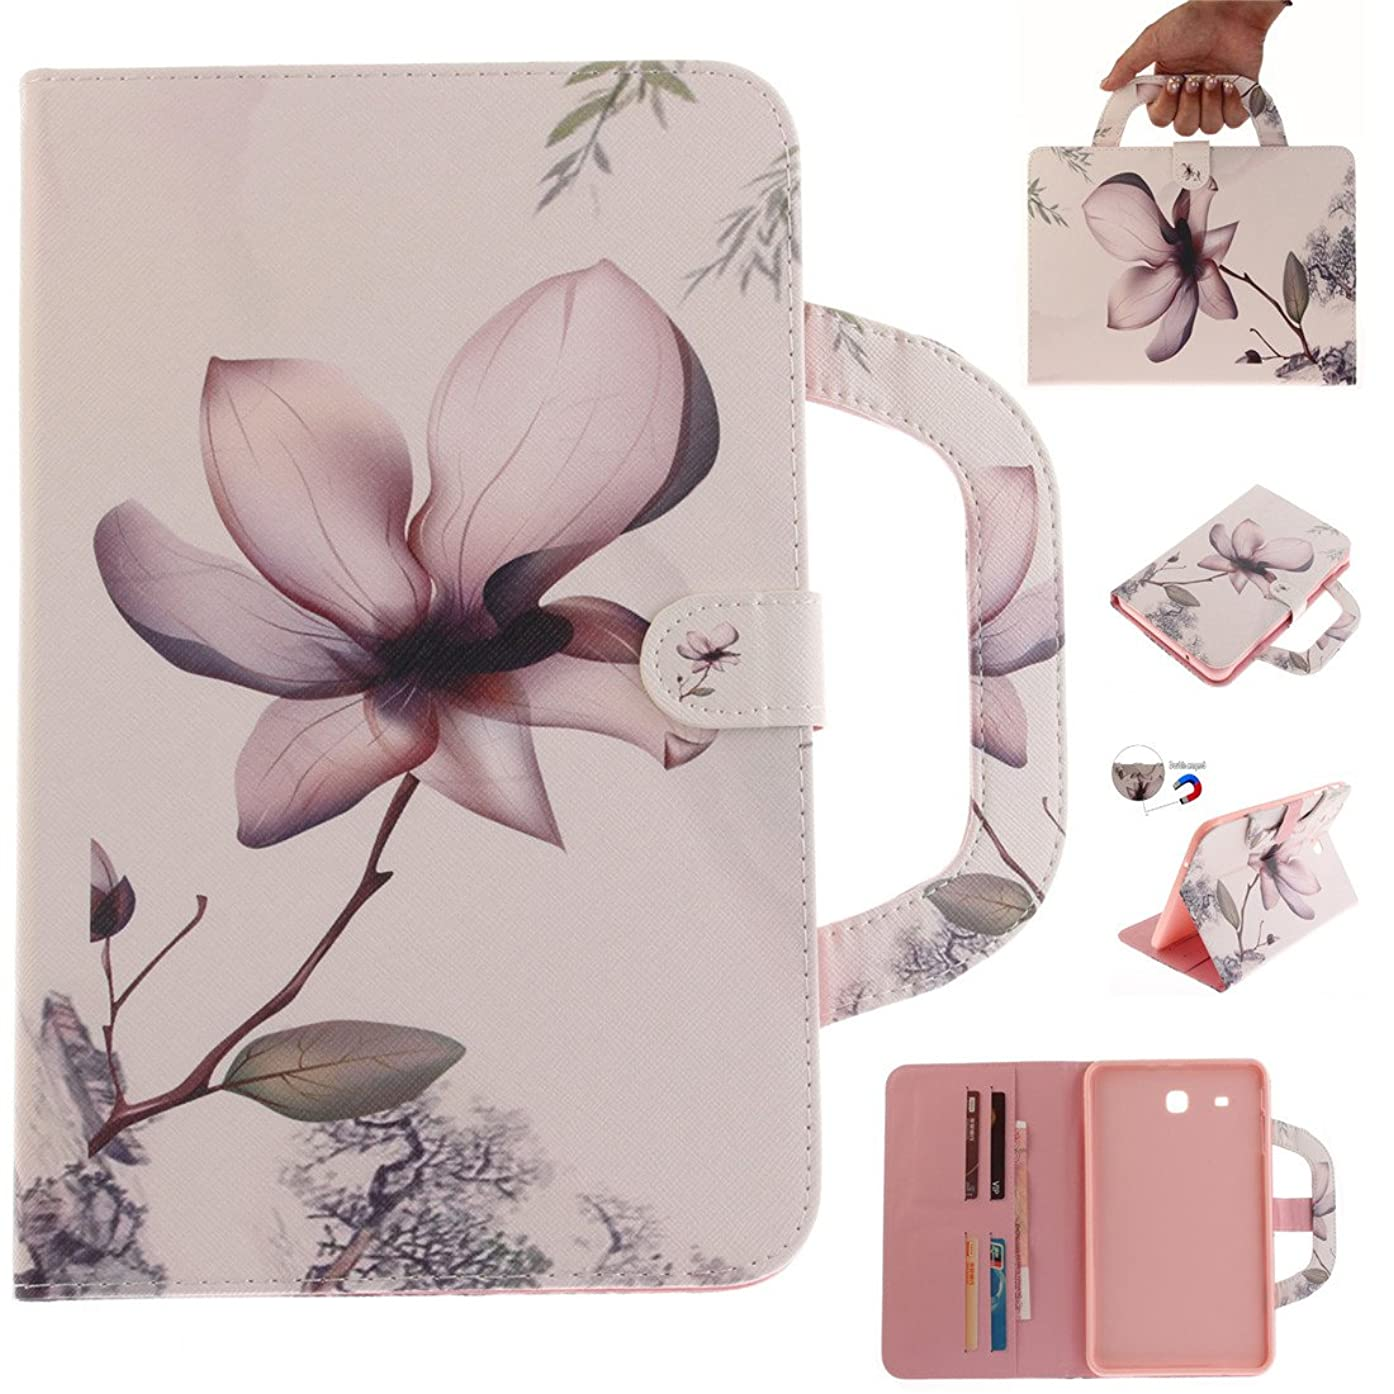 Galaxy Tab E 9.6 Case, Lwaisy Slim Fit Premium PU Leather Folio Stand Protective Case with Card Slots and Handle Cover for Samsung Galaxy Tab E 9.6 Inch SM-T560, Magnolia Flower